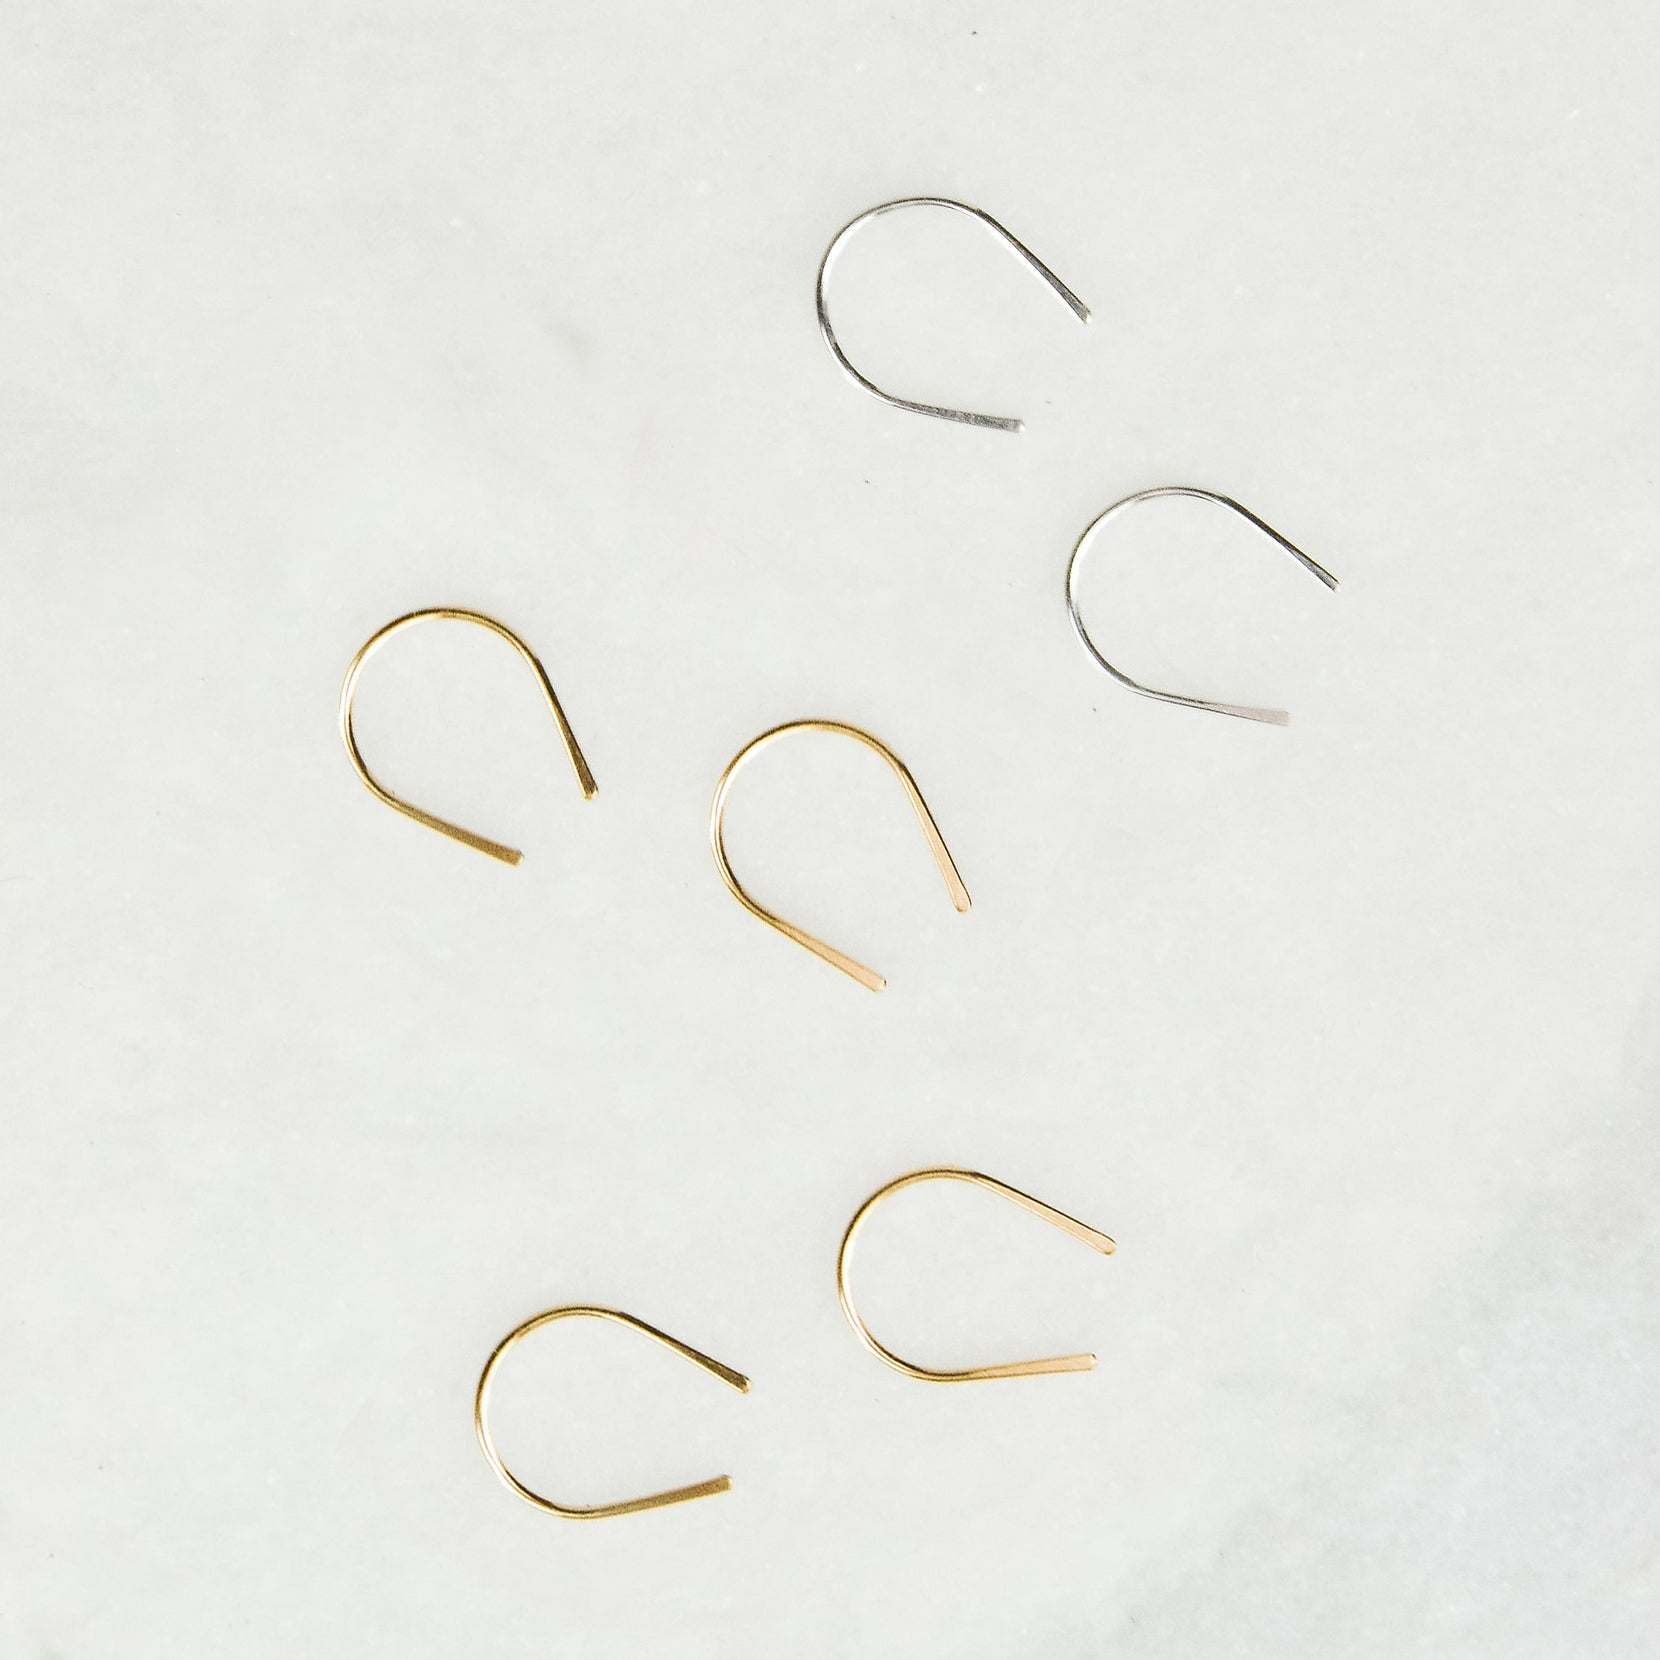 Mini Arc Earrings by Rockhaus Metals